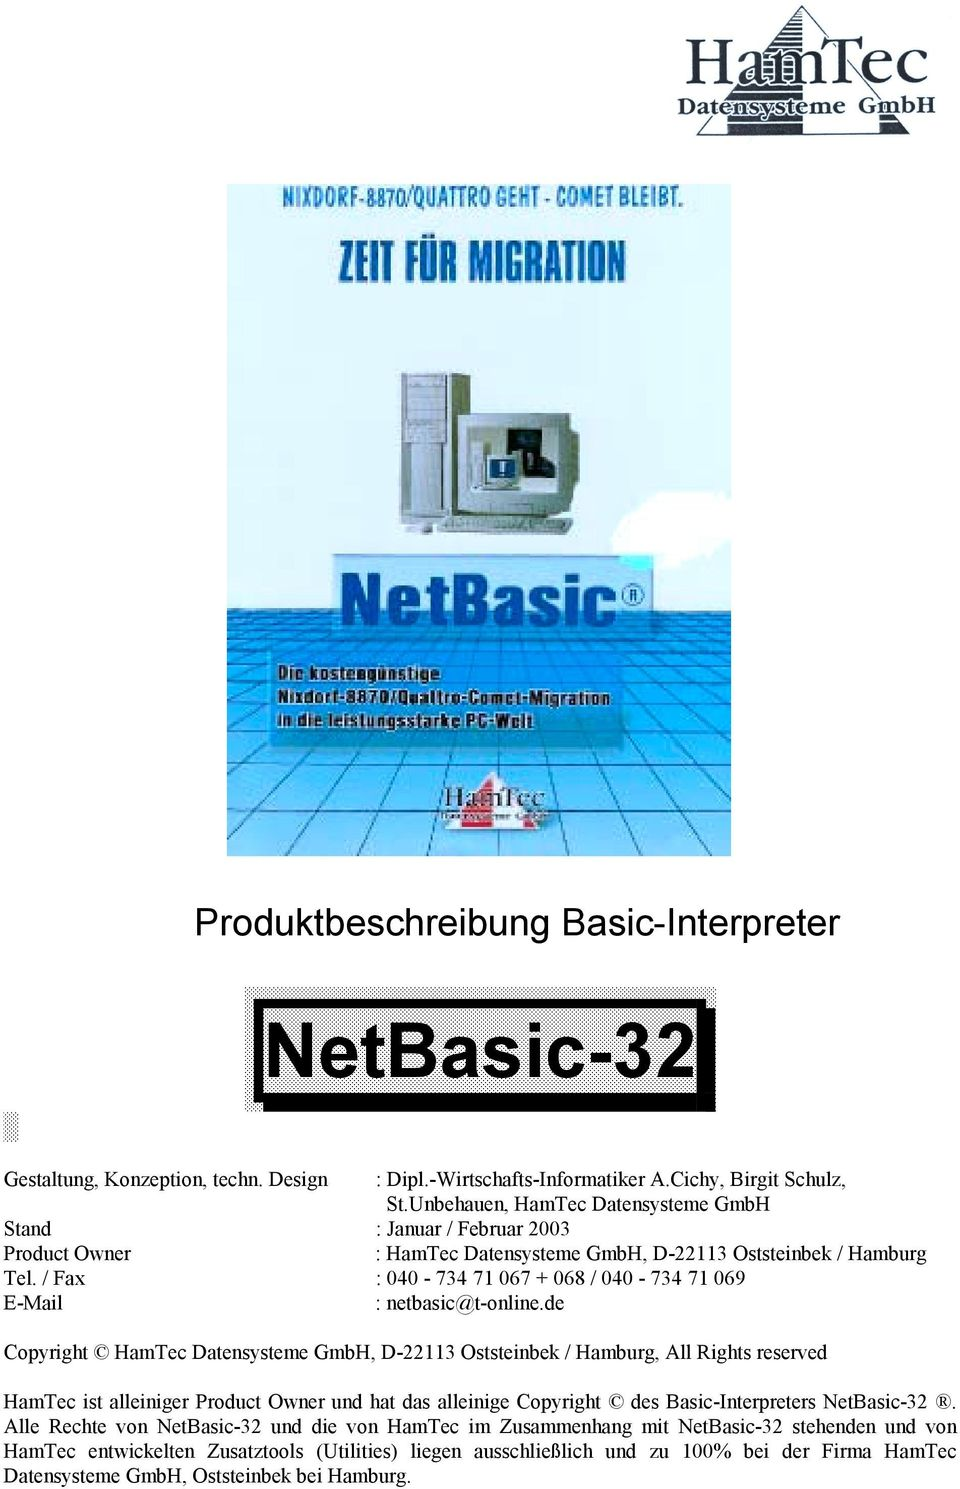 / Fax : 040-734 71 067 + 068 / 040-734 71 069 E-Mail : netbasic@t-online.